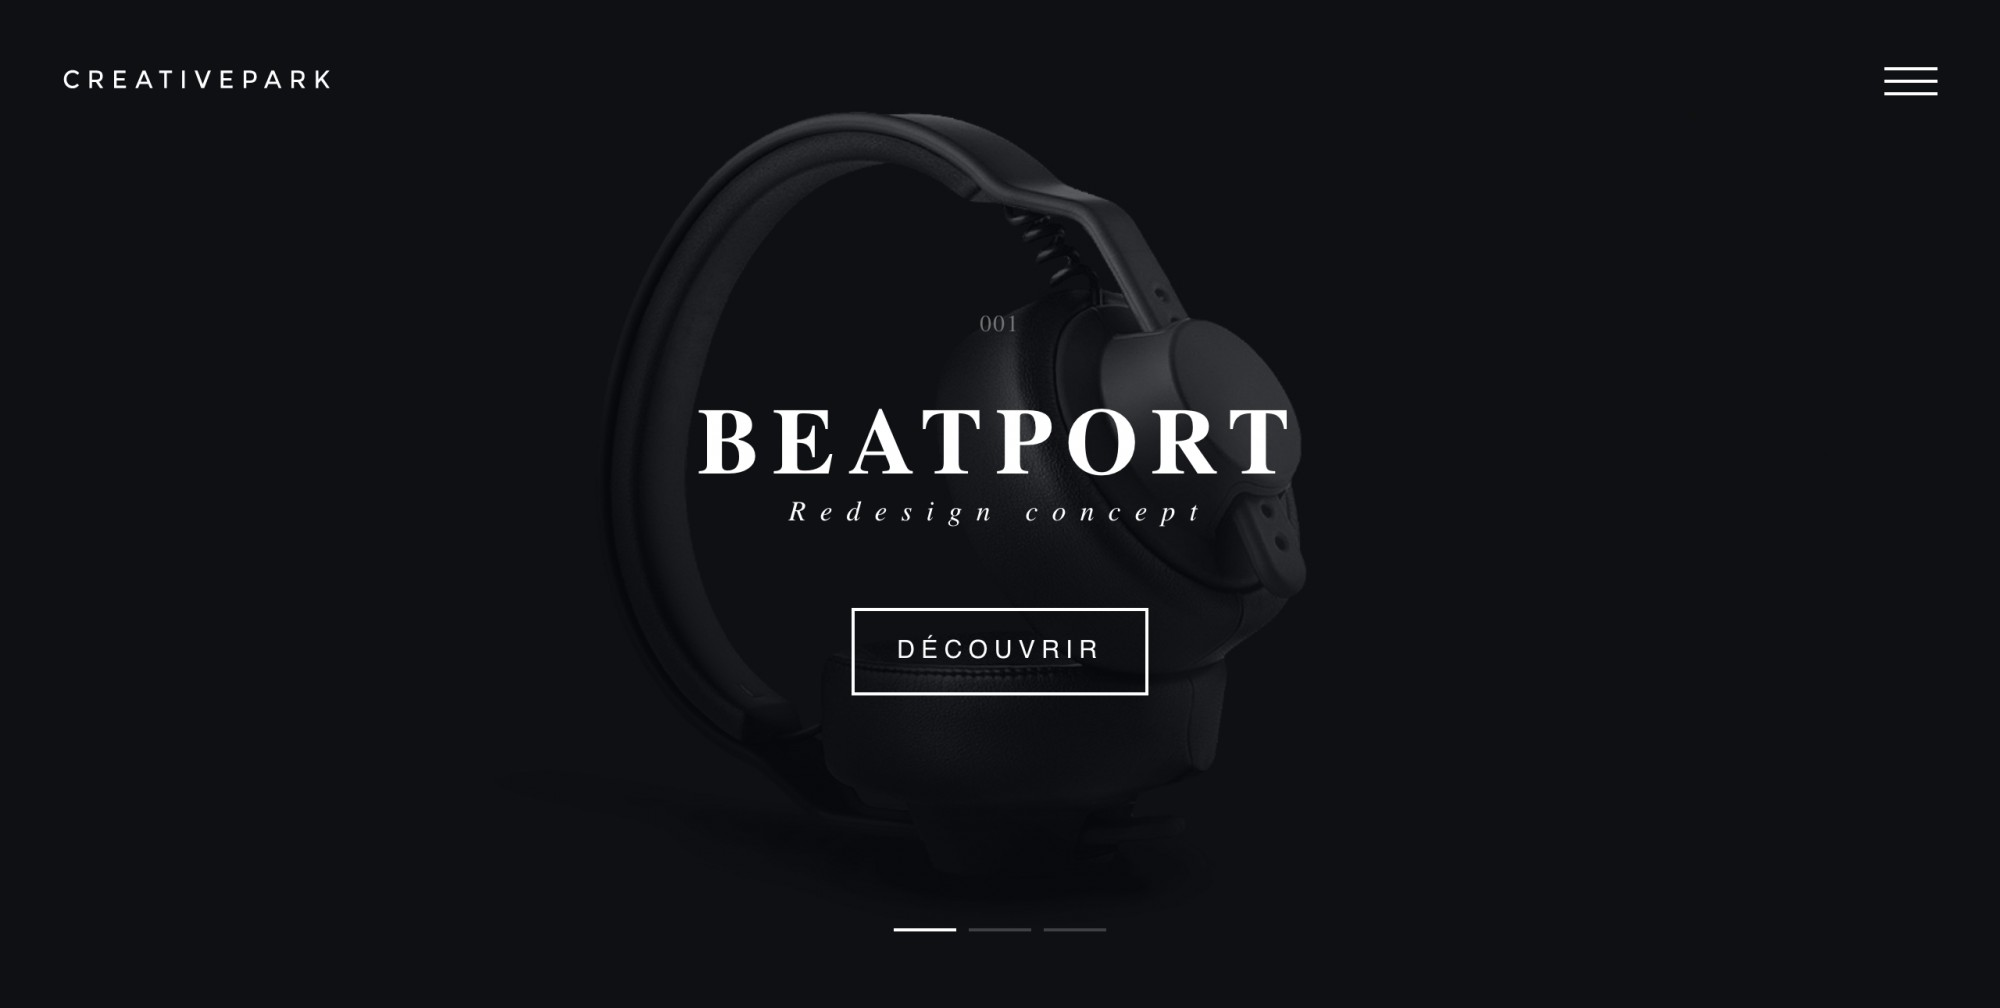 beatport landing where key message and CTA are highlighted with color contrast